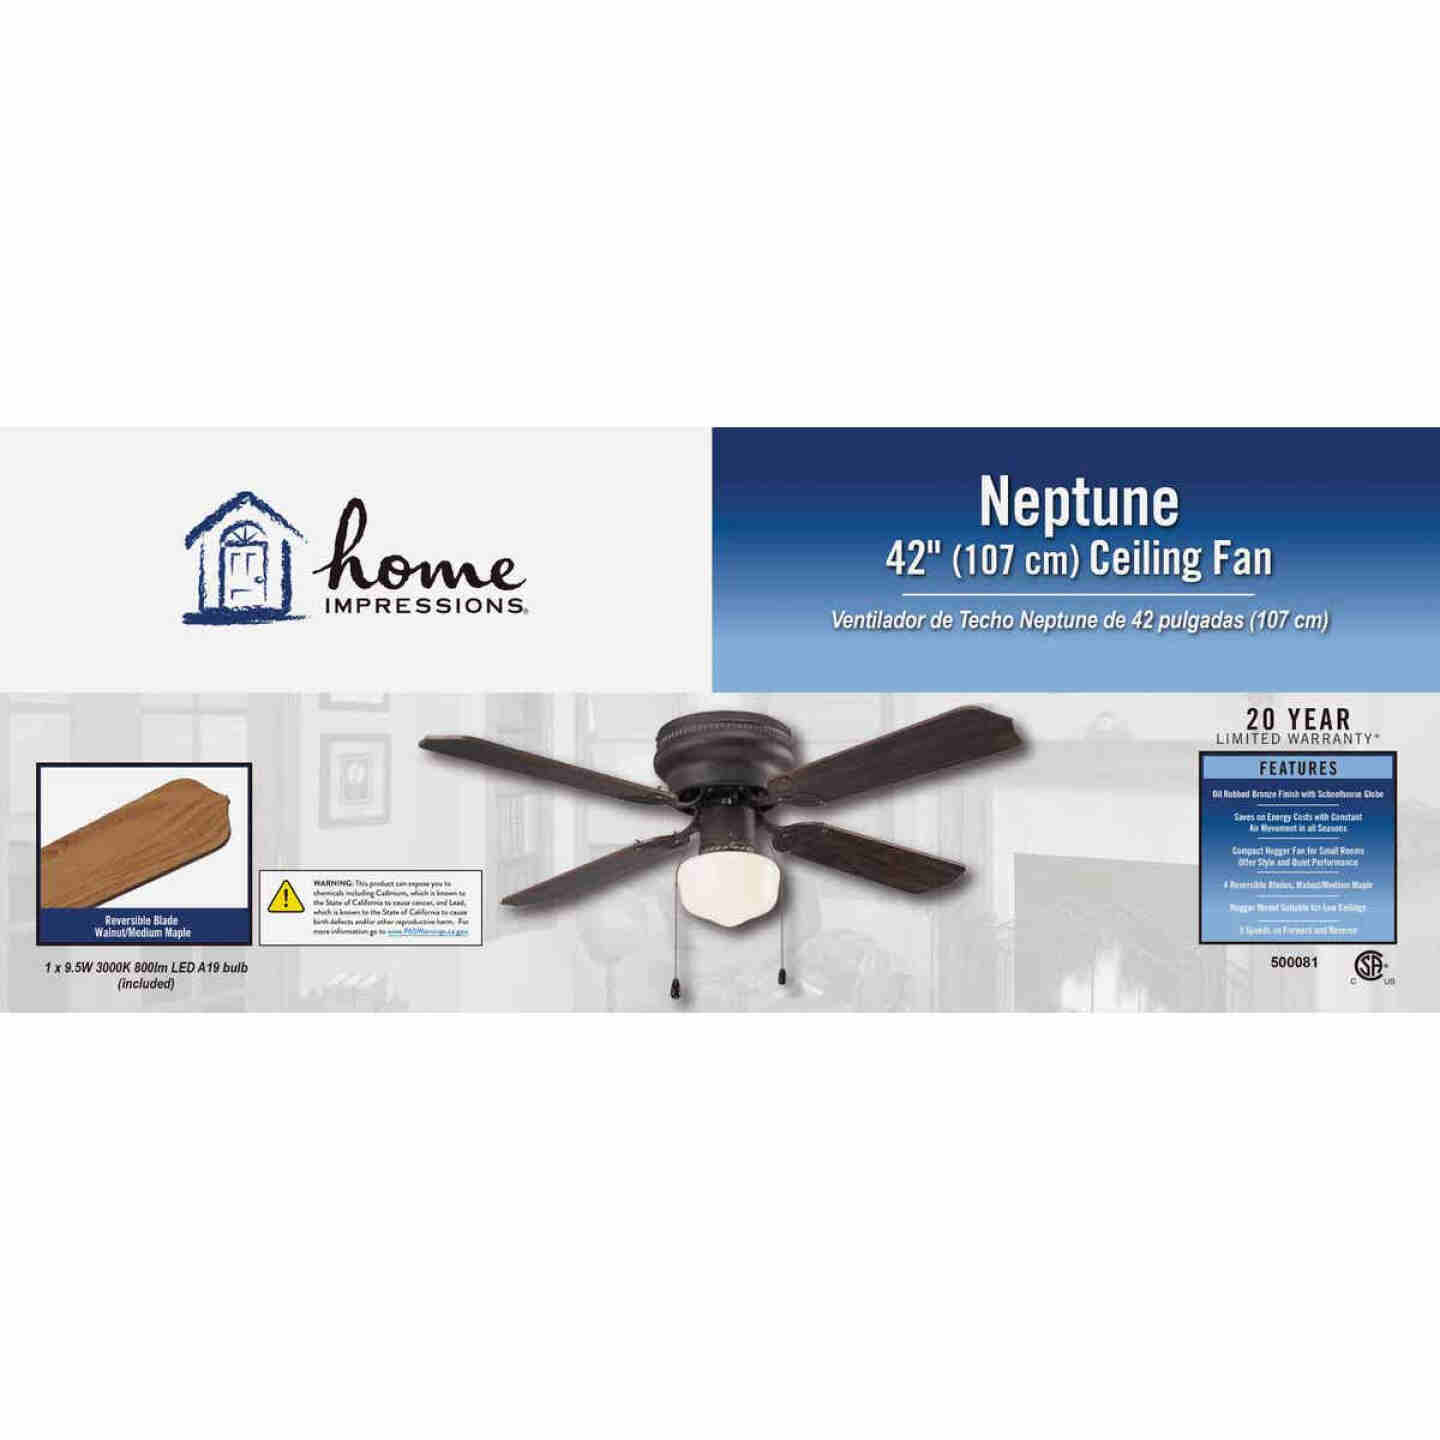 Home Impressions Neptune 42 In. Oil Rubbed Bronze Ceiling Fan with Light Kit Image 2